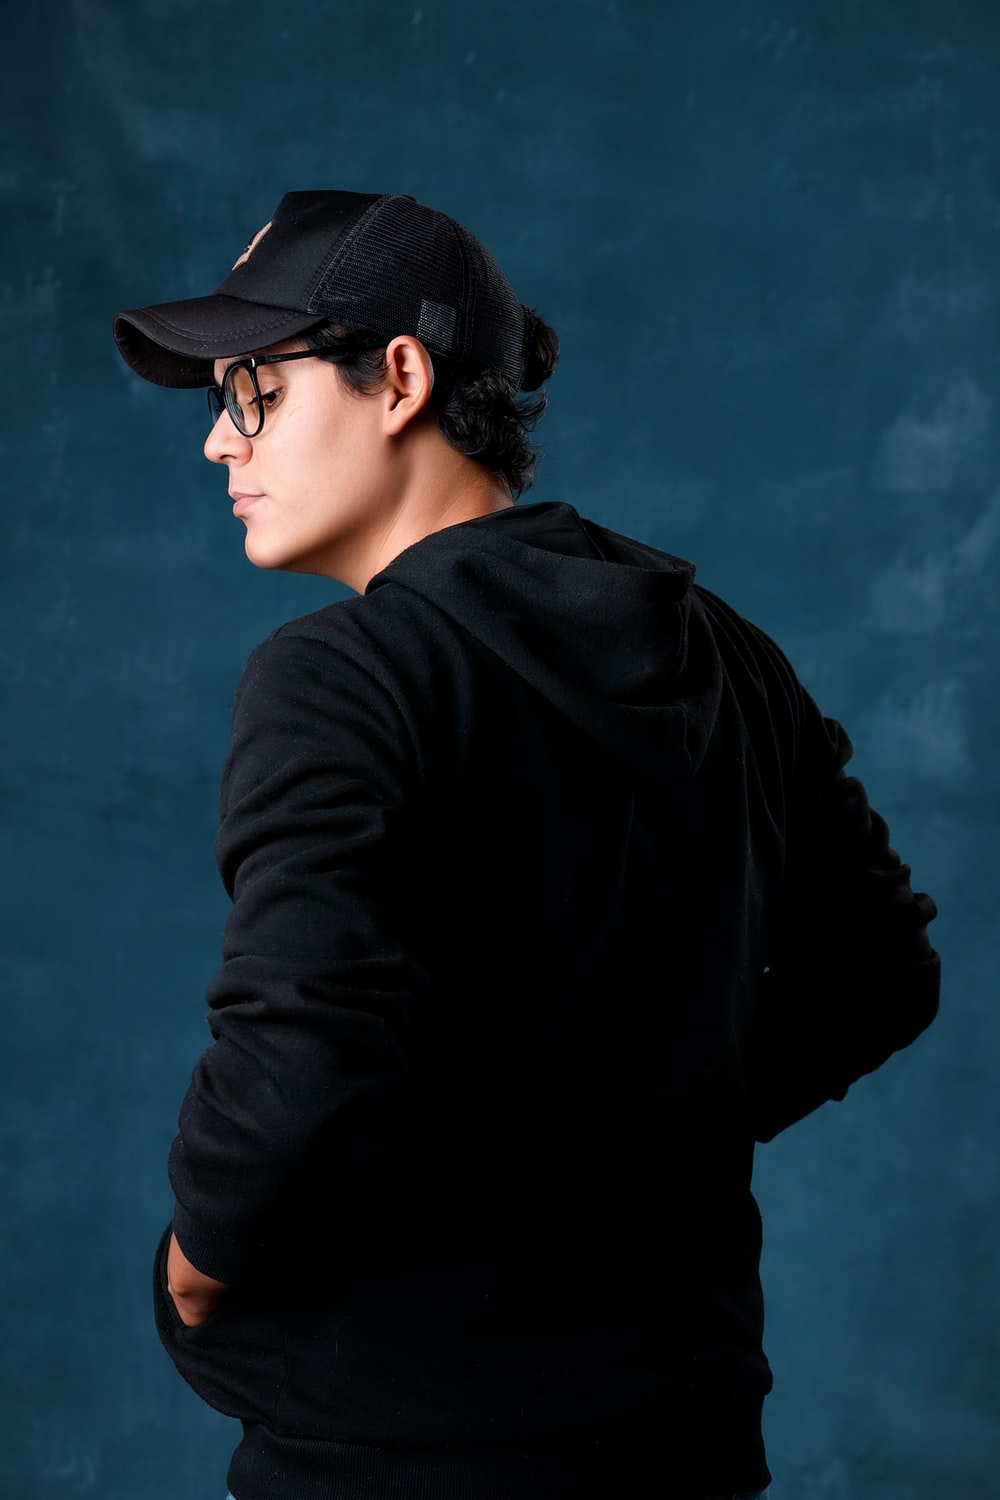 woman in black hat and black jacket